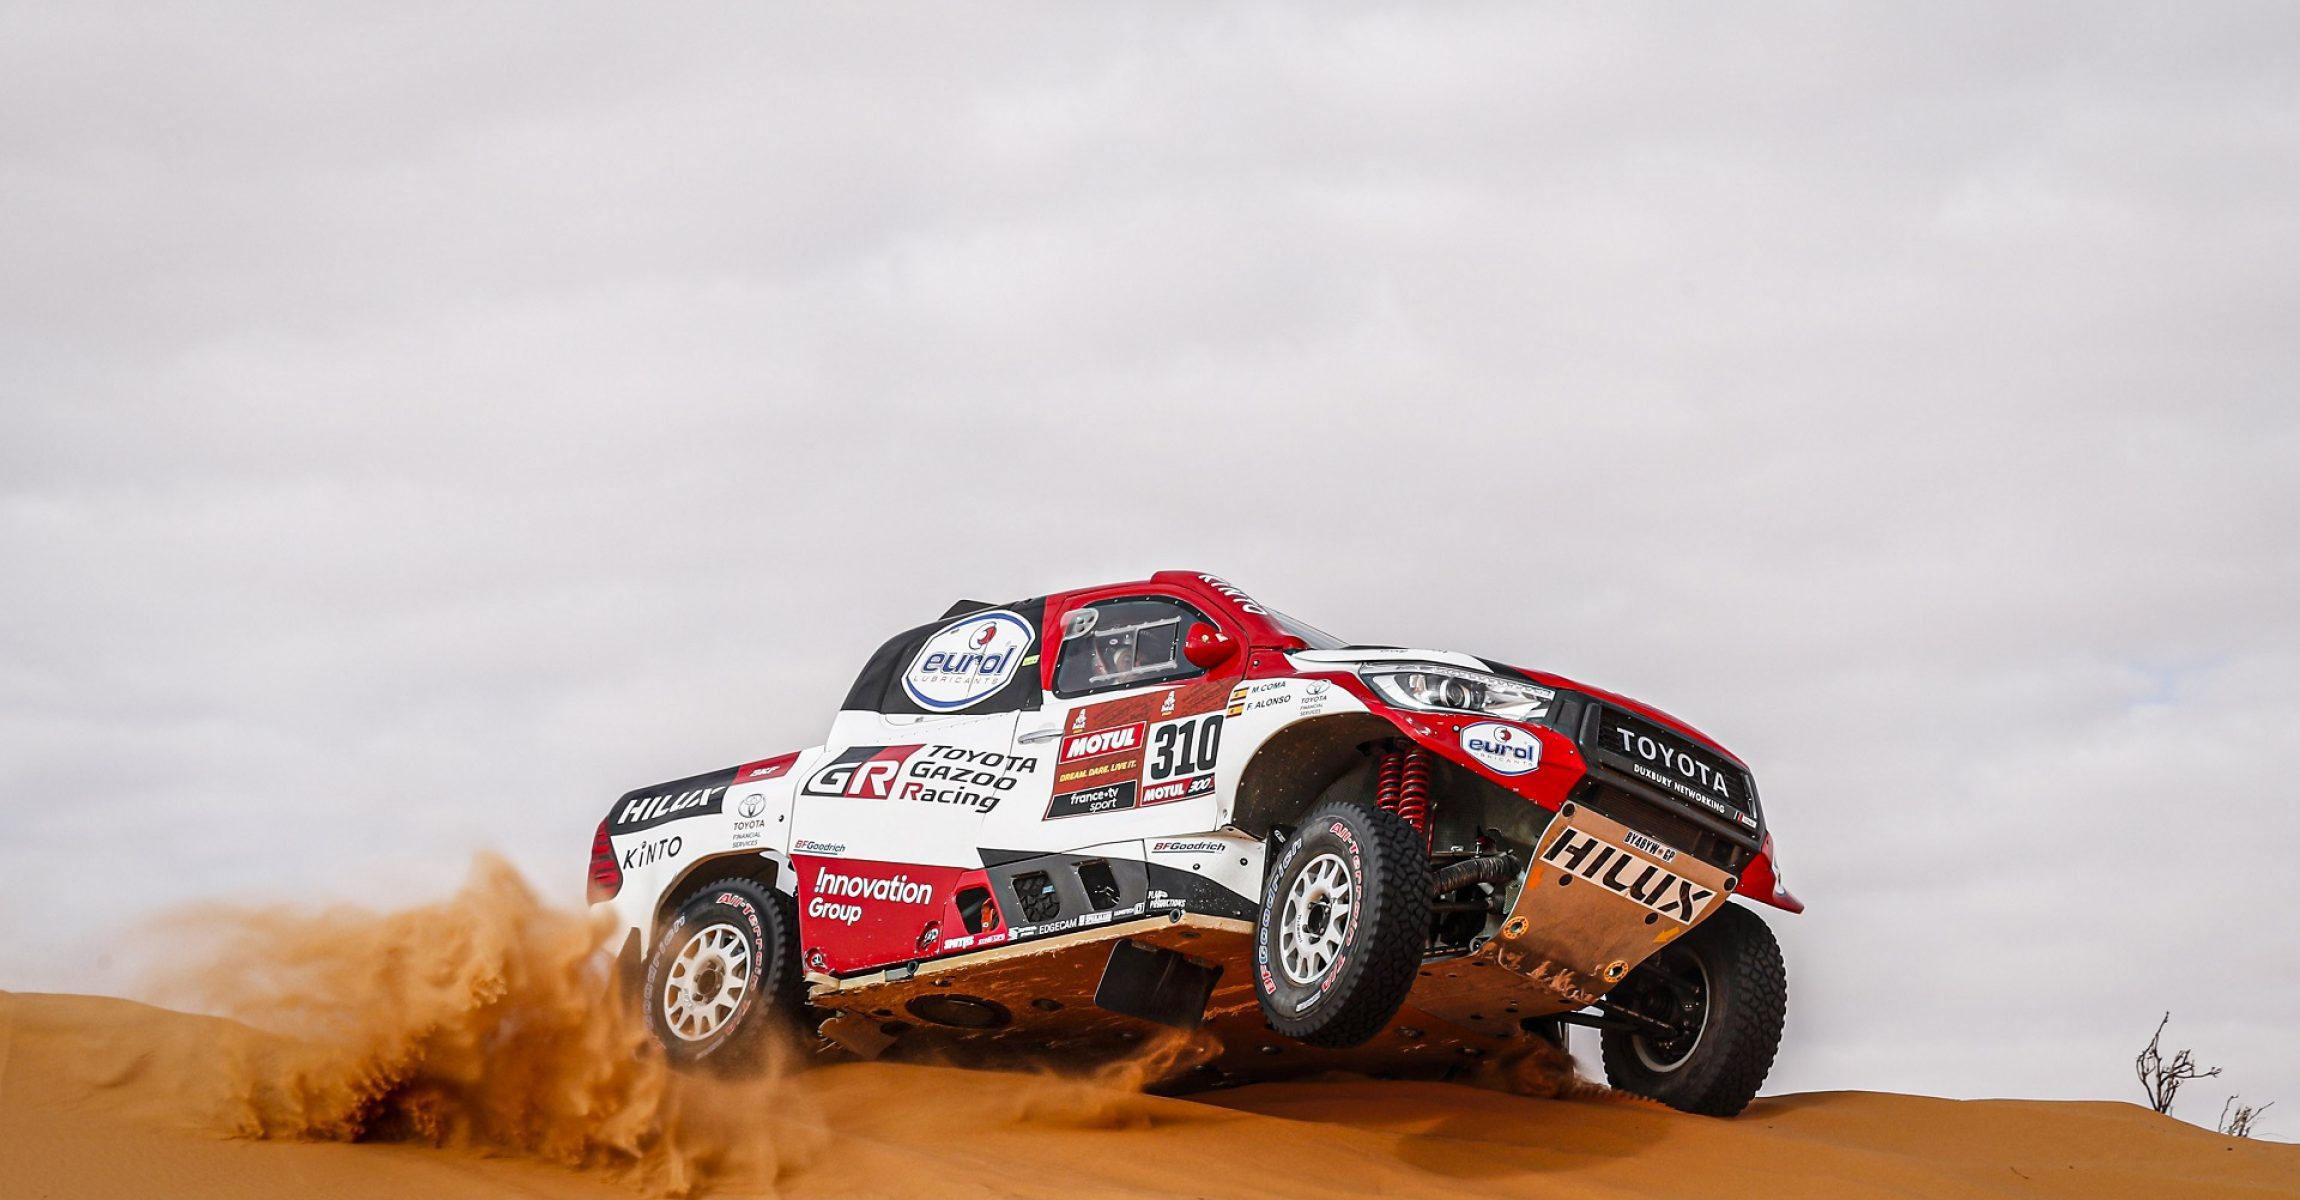 310 Alonso Fernando (esp), Coma Marc (esp), Toyota Hilux, Toyota Gazoo Ragin, Auto, Car, action during Stage 6 of the Dakar 2020 between Ha'il and Riyadh, 830 km - SS 478 km, in Saudi Arabia, on January 10, 2020 - Photo DPPI